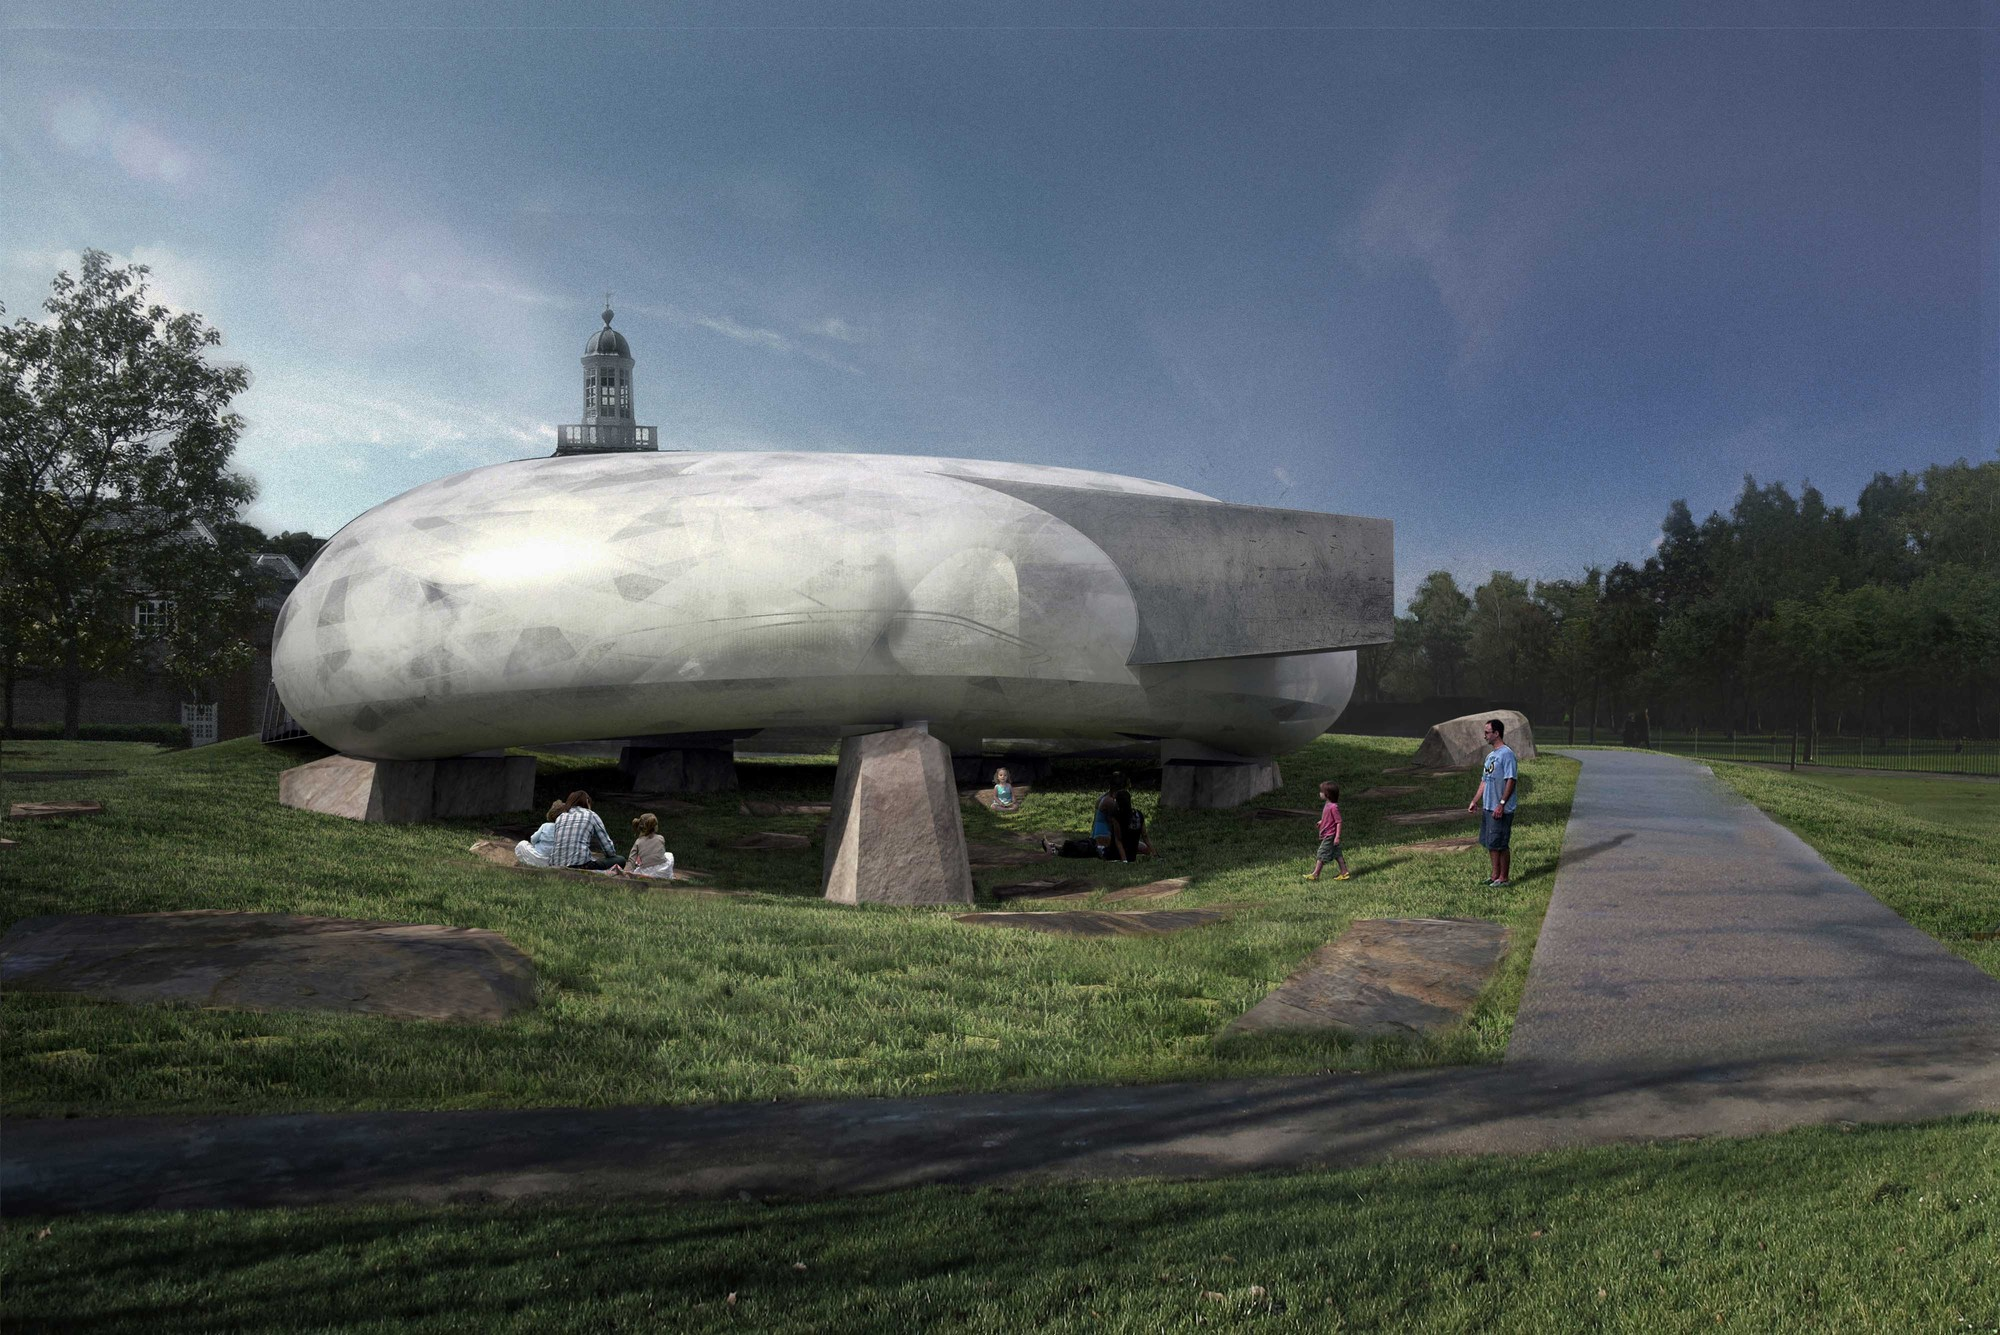 Smiljan Radic to Design 2014 Serpentine Pavilion, © 2014 Smiljan Radic Studio